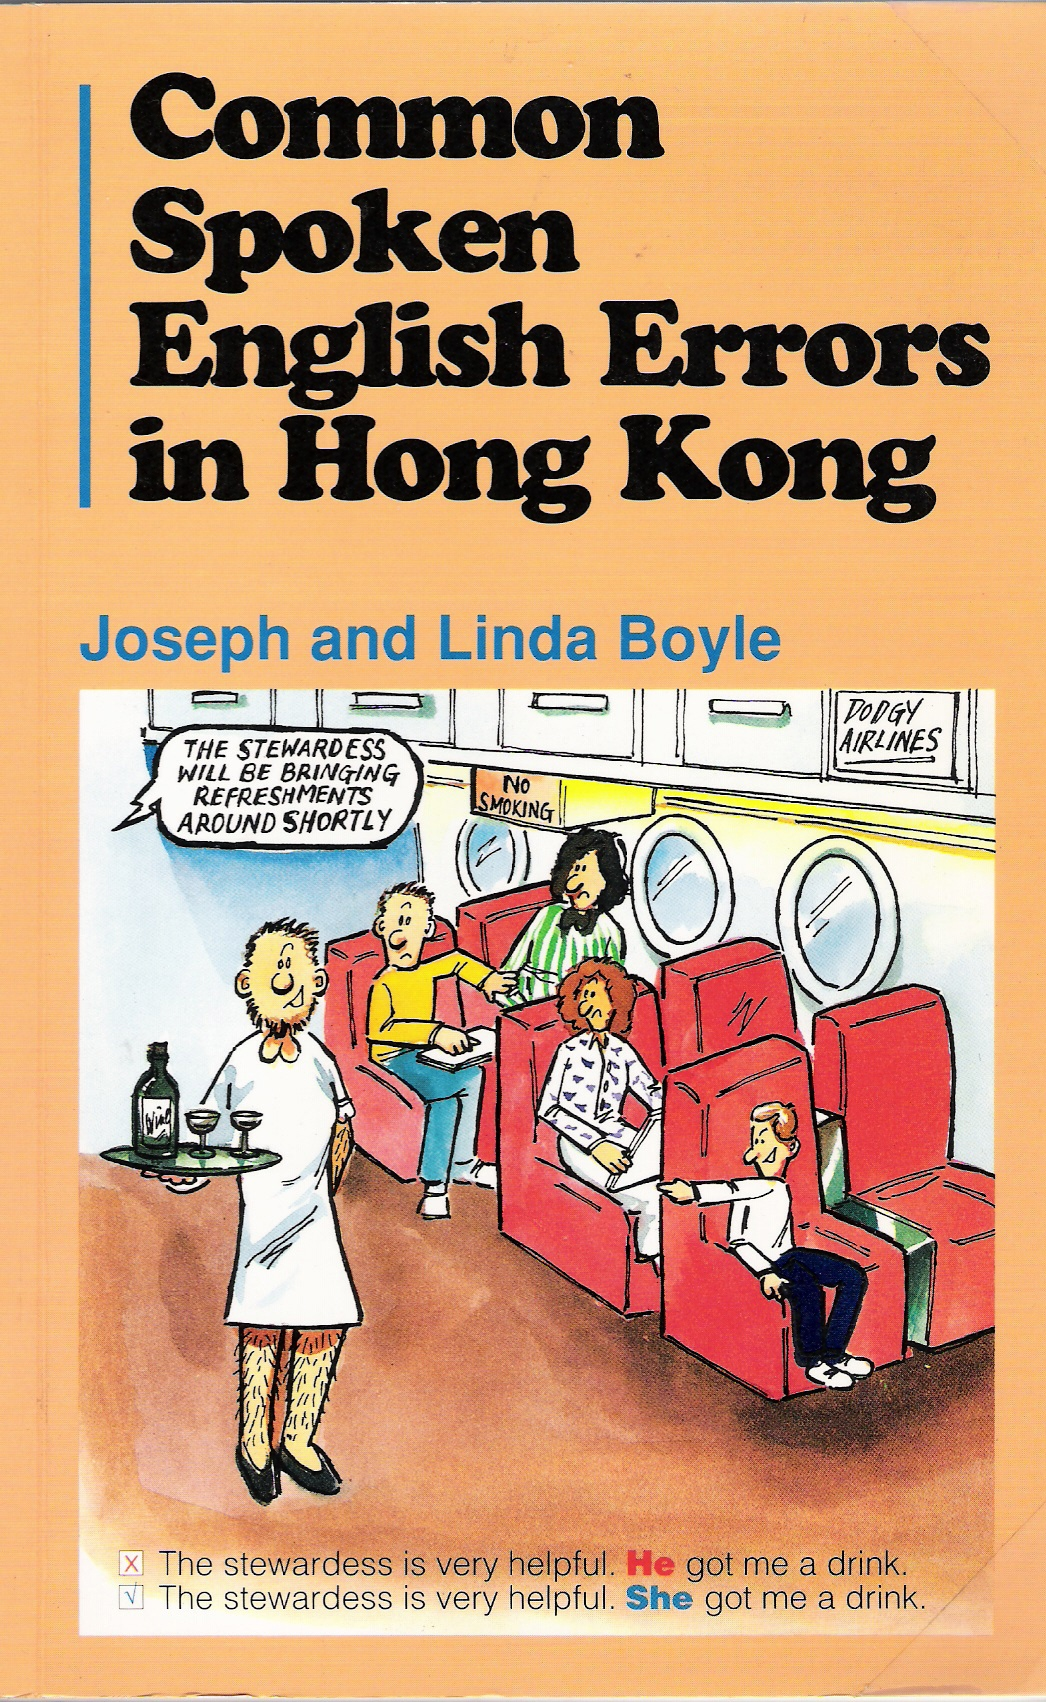 british and american english in hk British schools in hong kong the english schools foundation ( esf ) is one of the oldest school systems in hong kong it dates back to the early years of the colonial occupation, when british schoolchildren attended british-style schools modelled after those they would have attended at home in england.